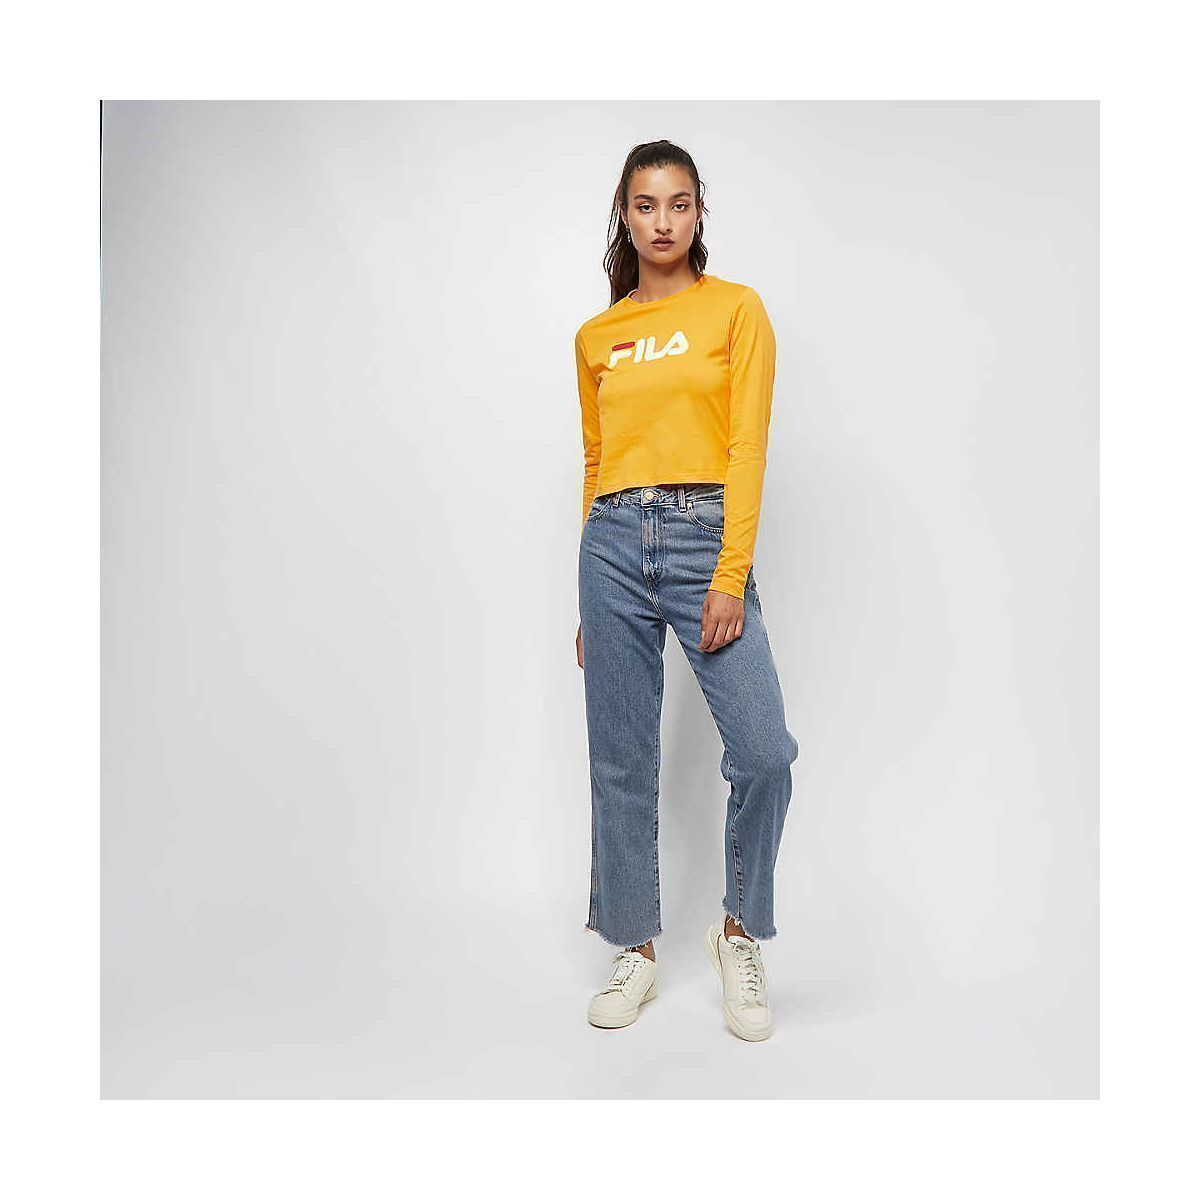 SPAINSTRAP MARCELINE CROPPED LS SHIRT:JAUNE/POLYESTER/POLYESTER//Jaune